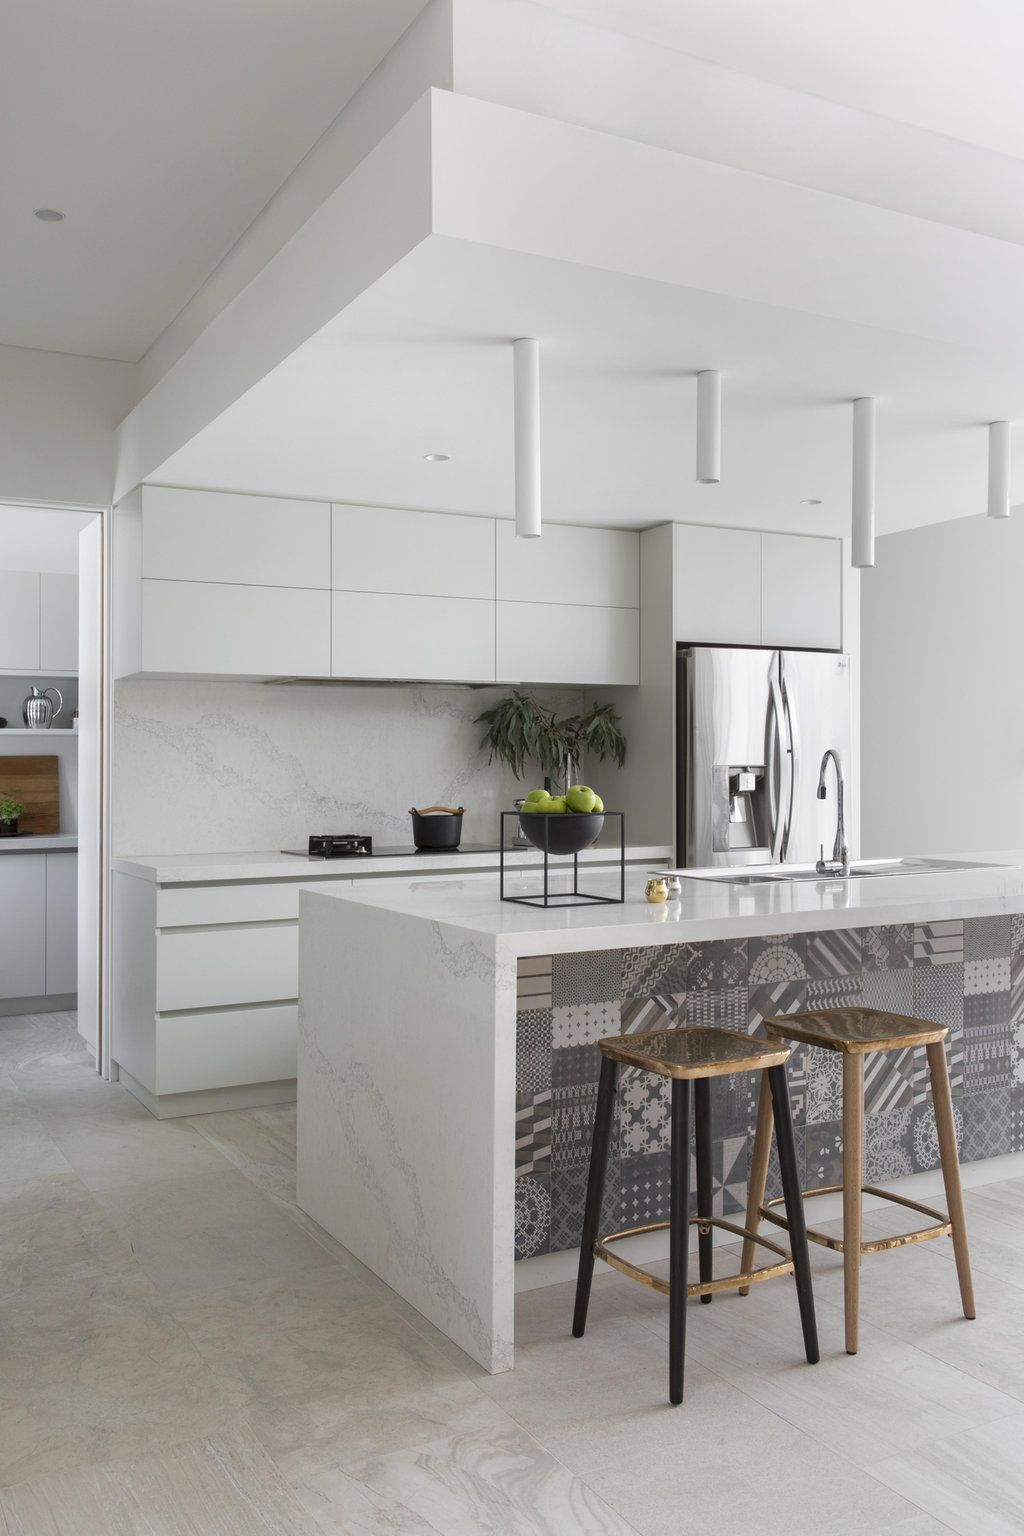 Design Ideas From Four Stunning Perth Kitchens